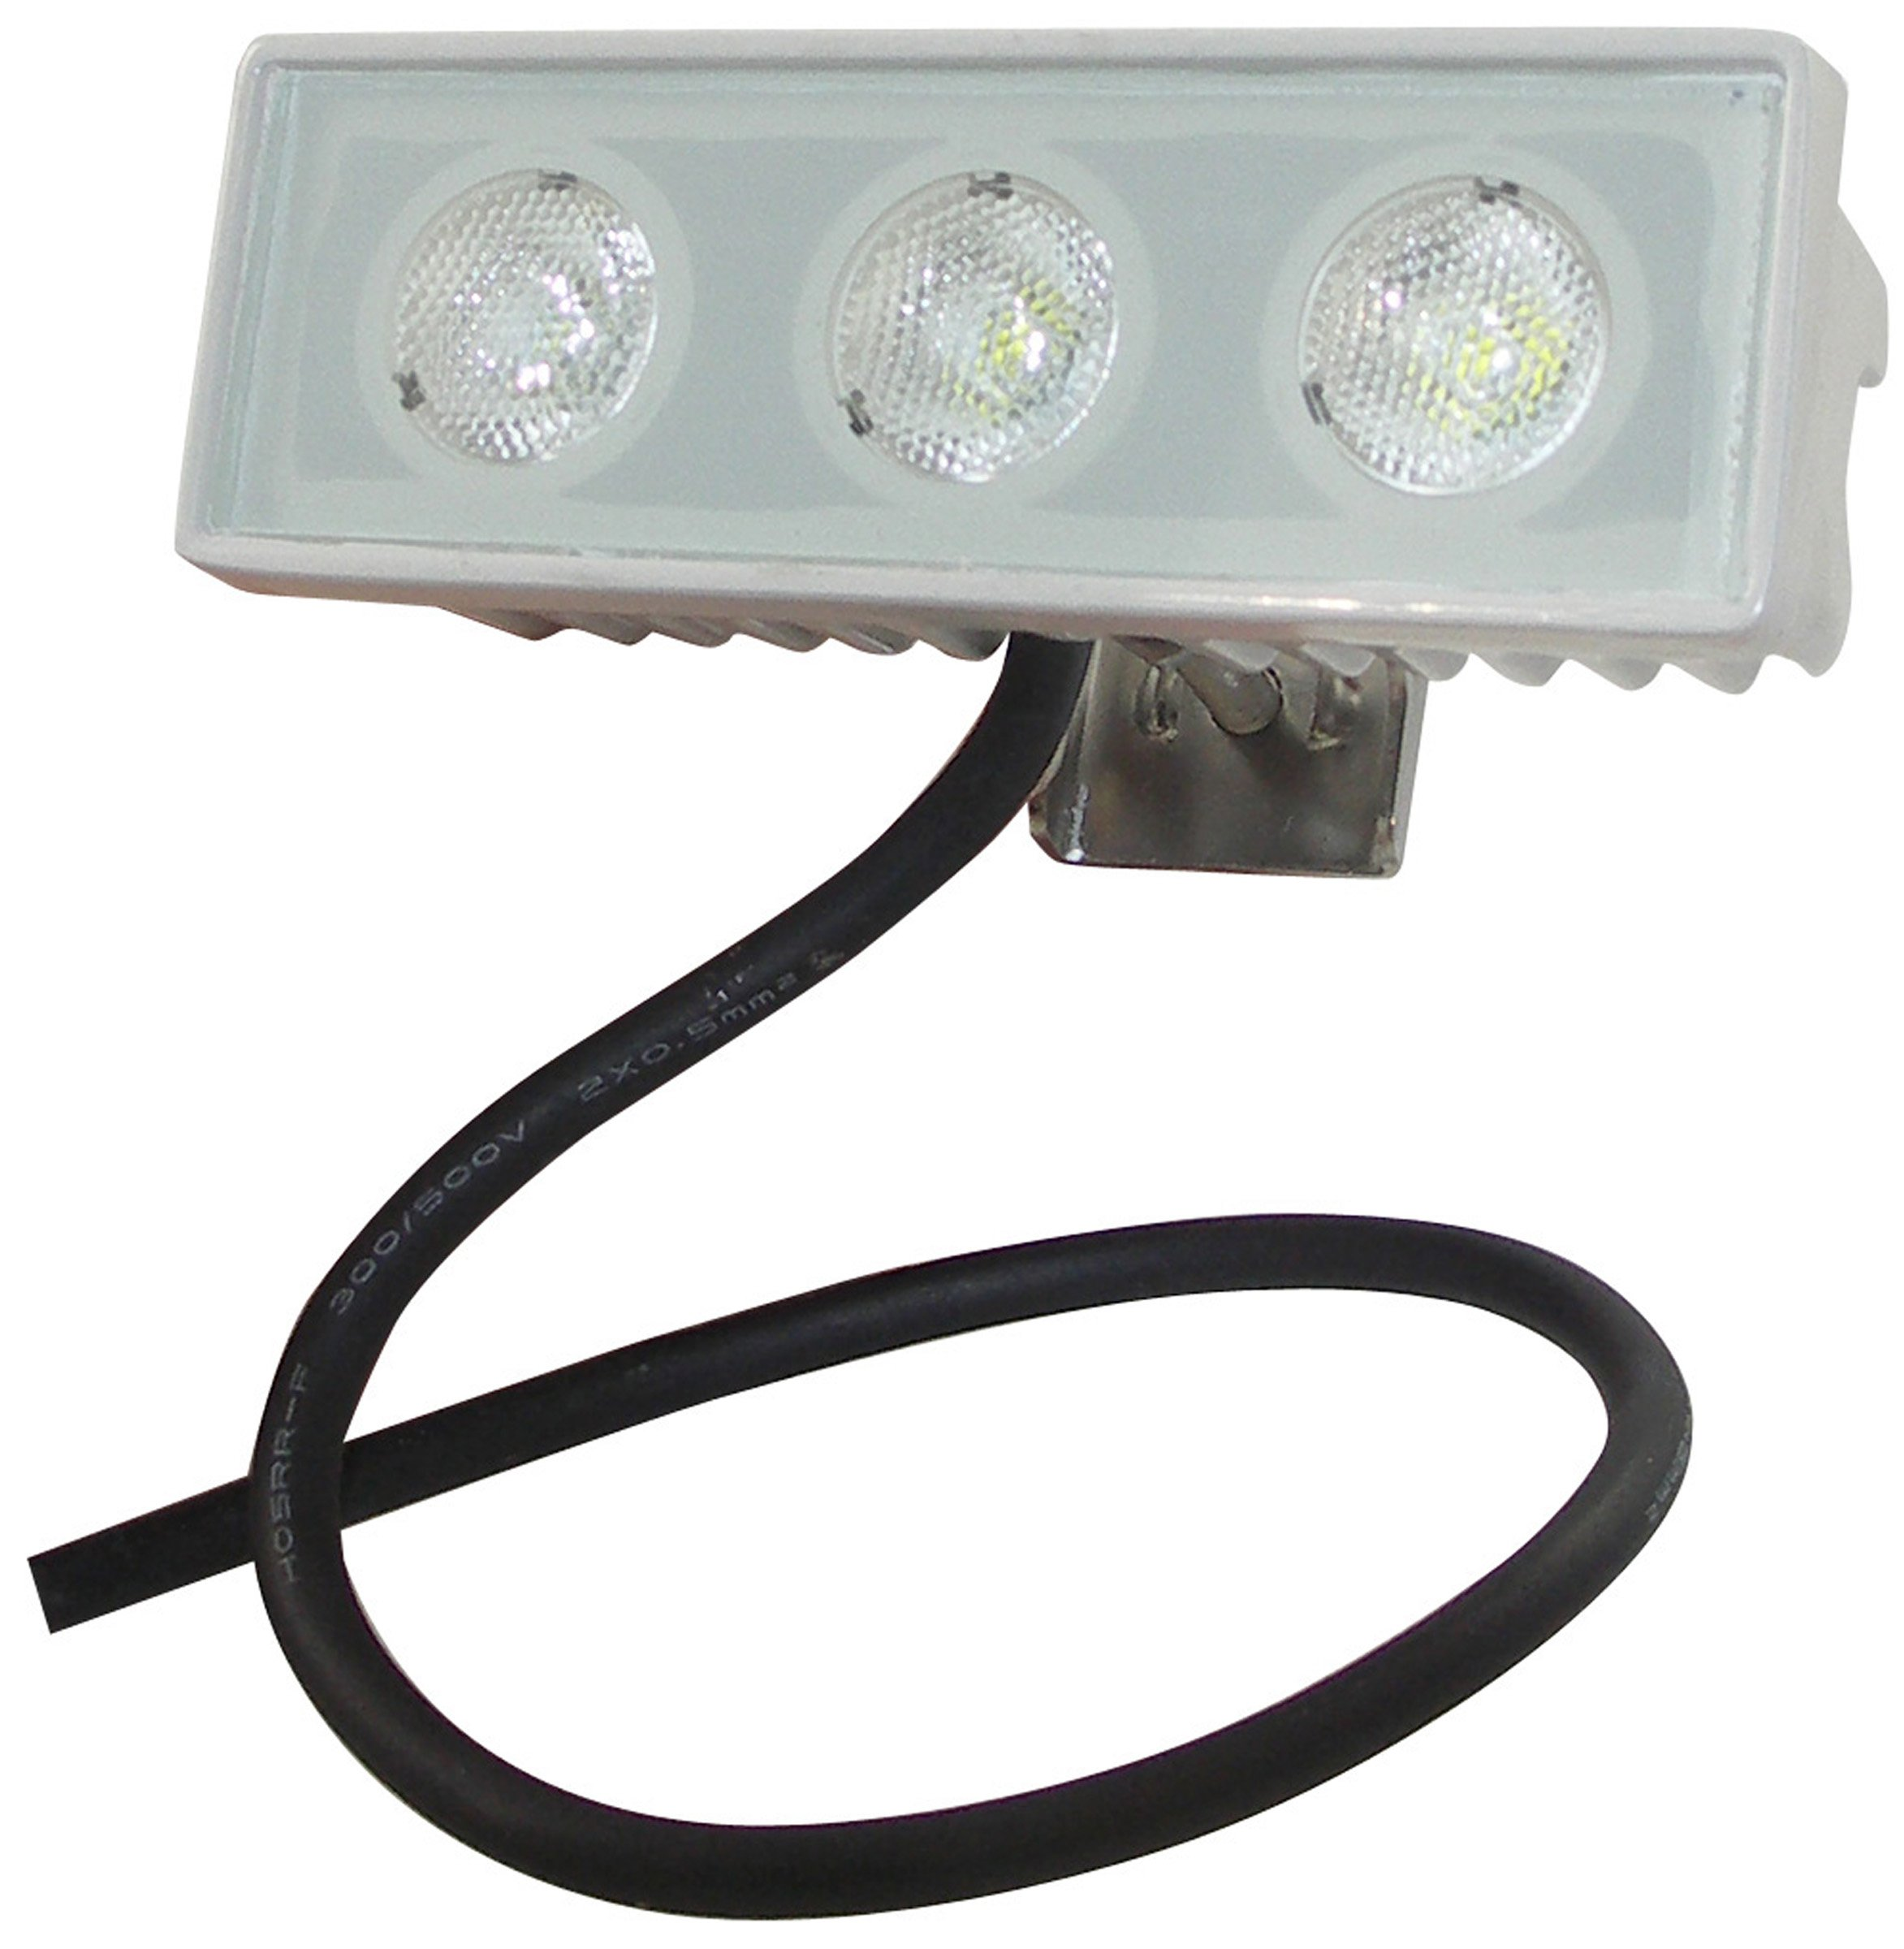 Shoreline Marine LED Spreader/Docking Light by Shoreline Marine